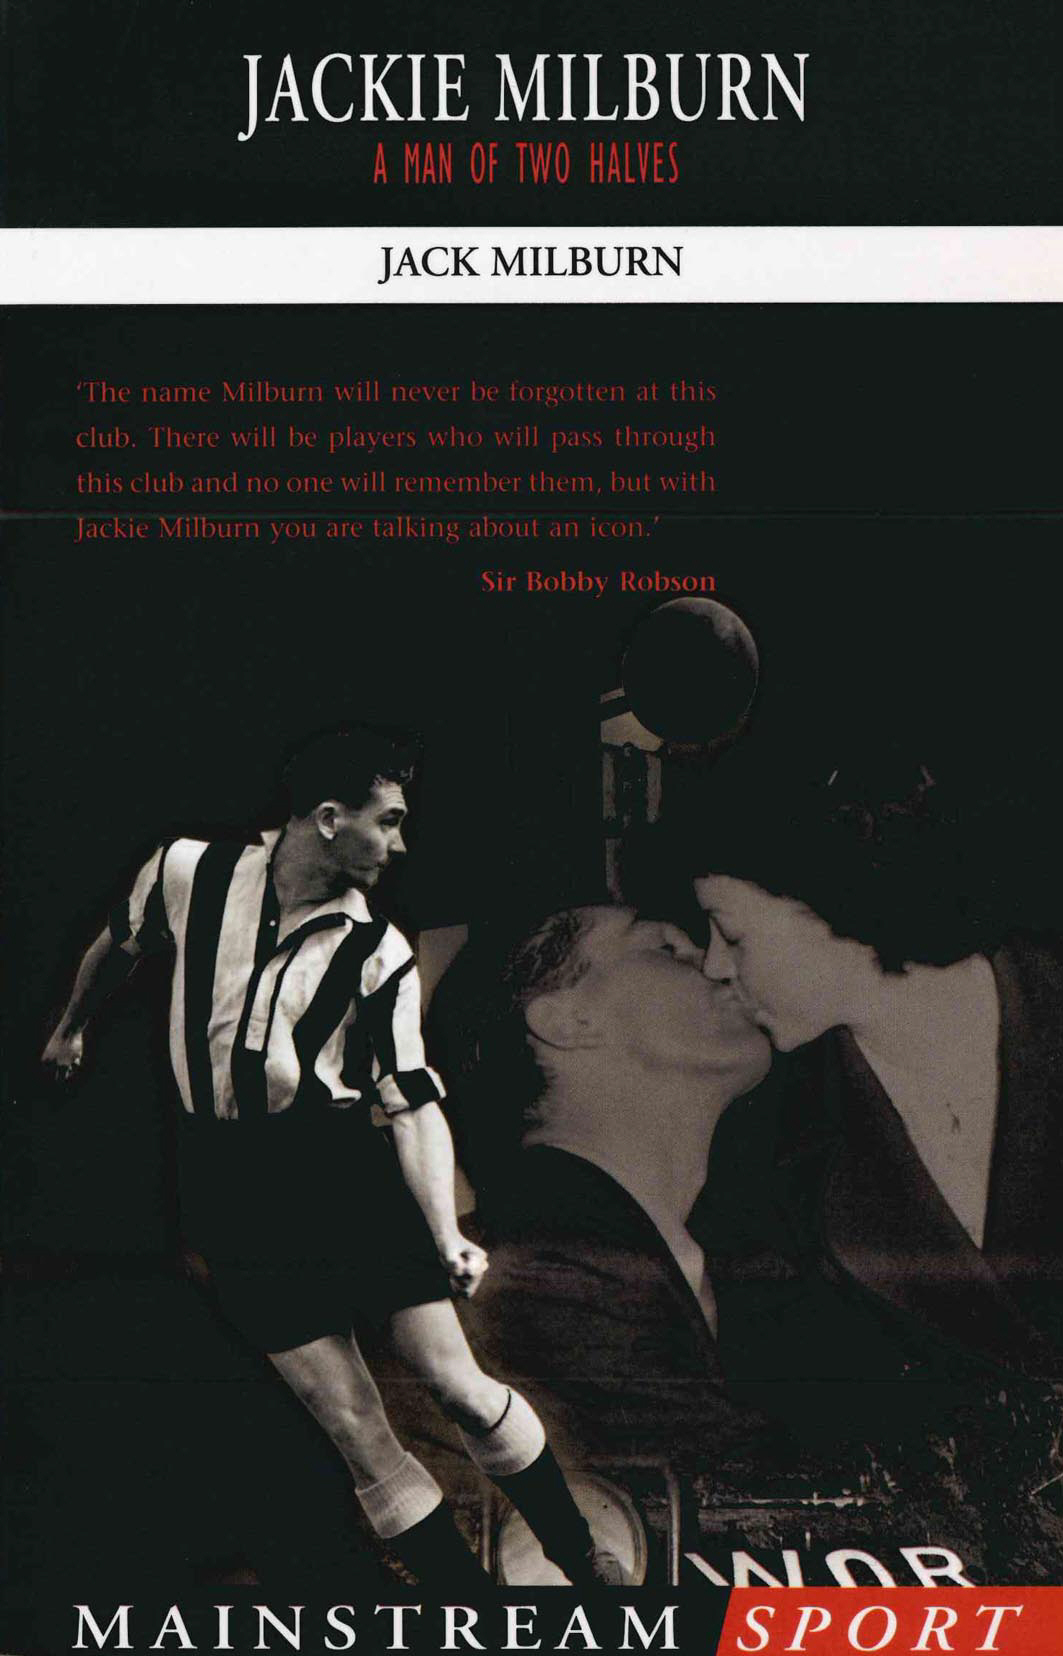 Jackie Milburn A Man of Two Halves